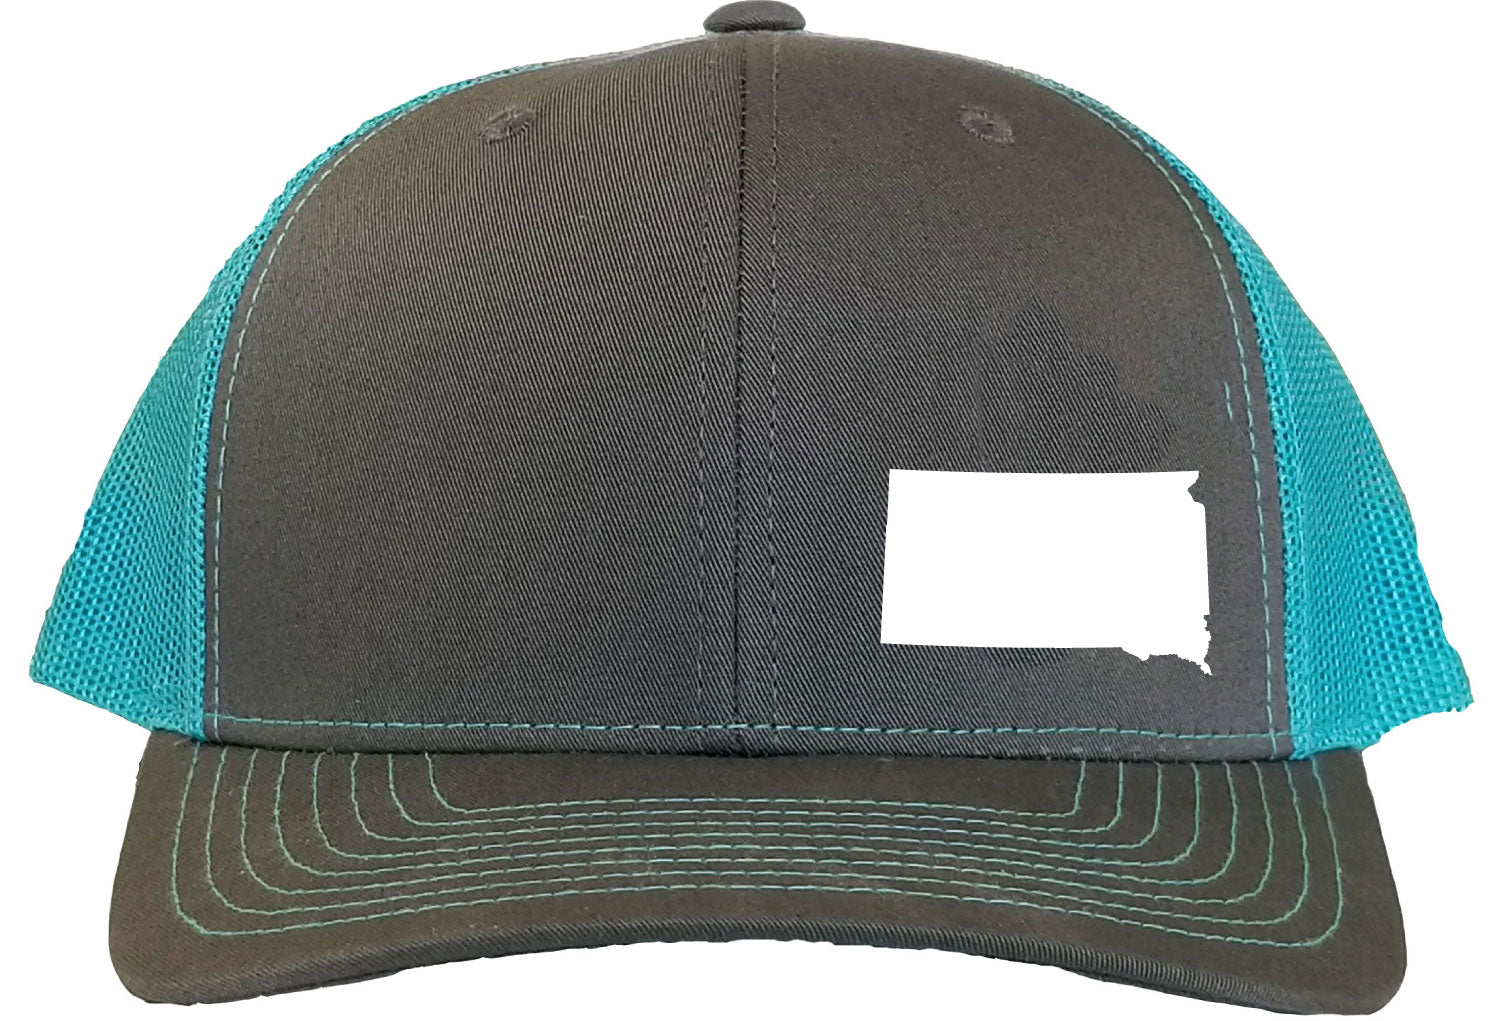 South Dakota Snapback Hat - Grey/Aqua